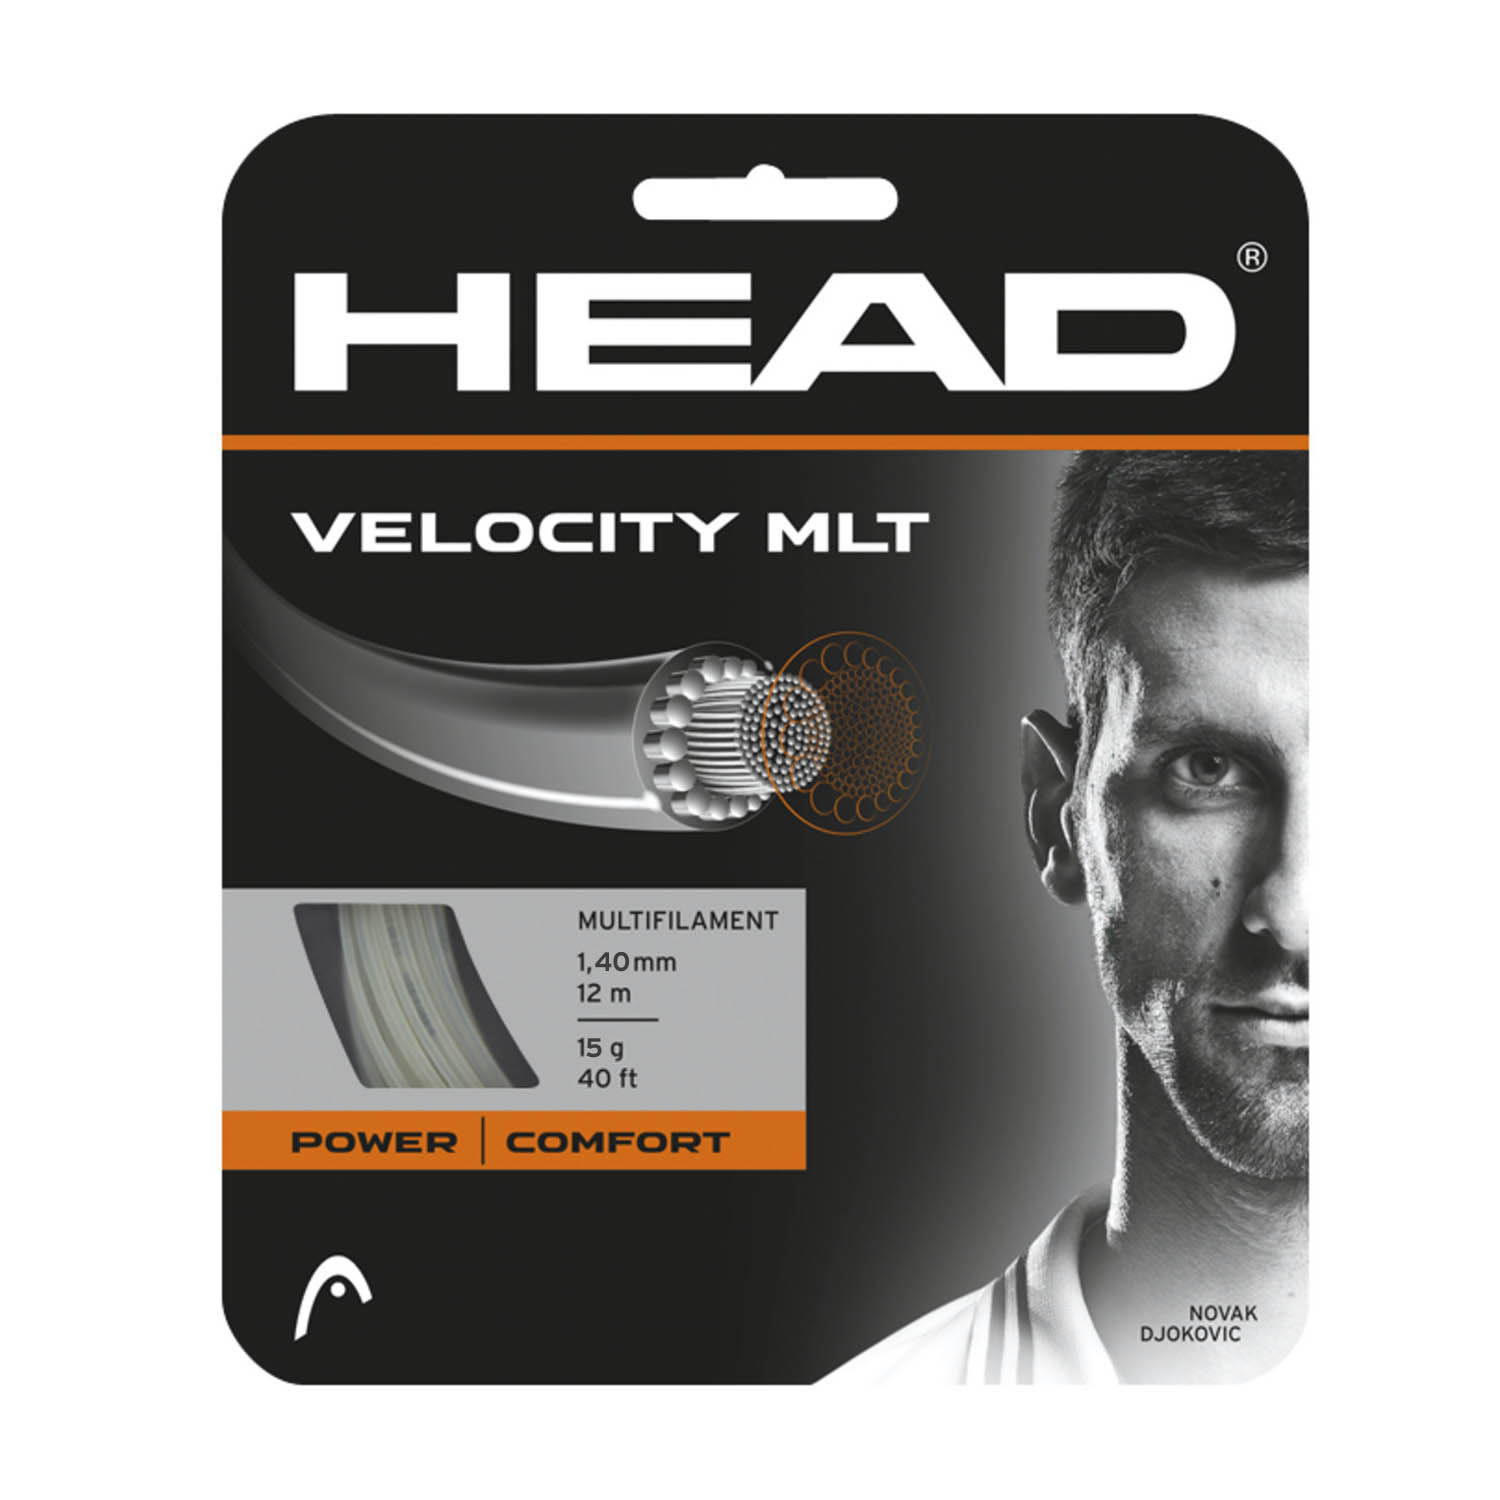 Head MultiPower Velocity 1.40 12 m Set - Natural